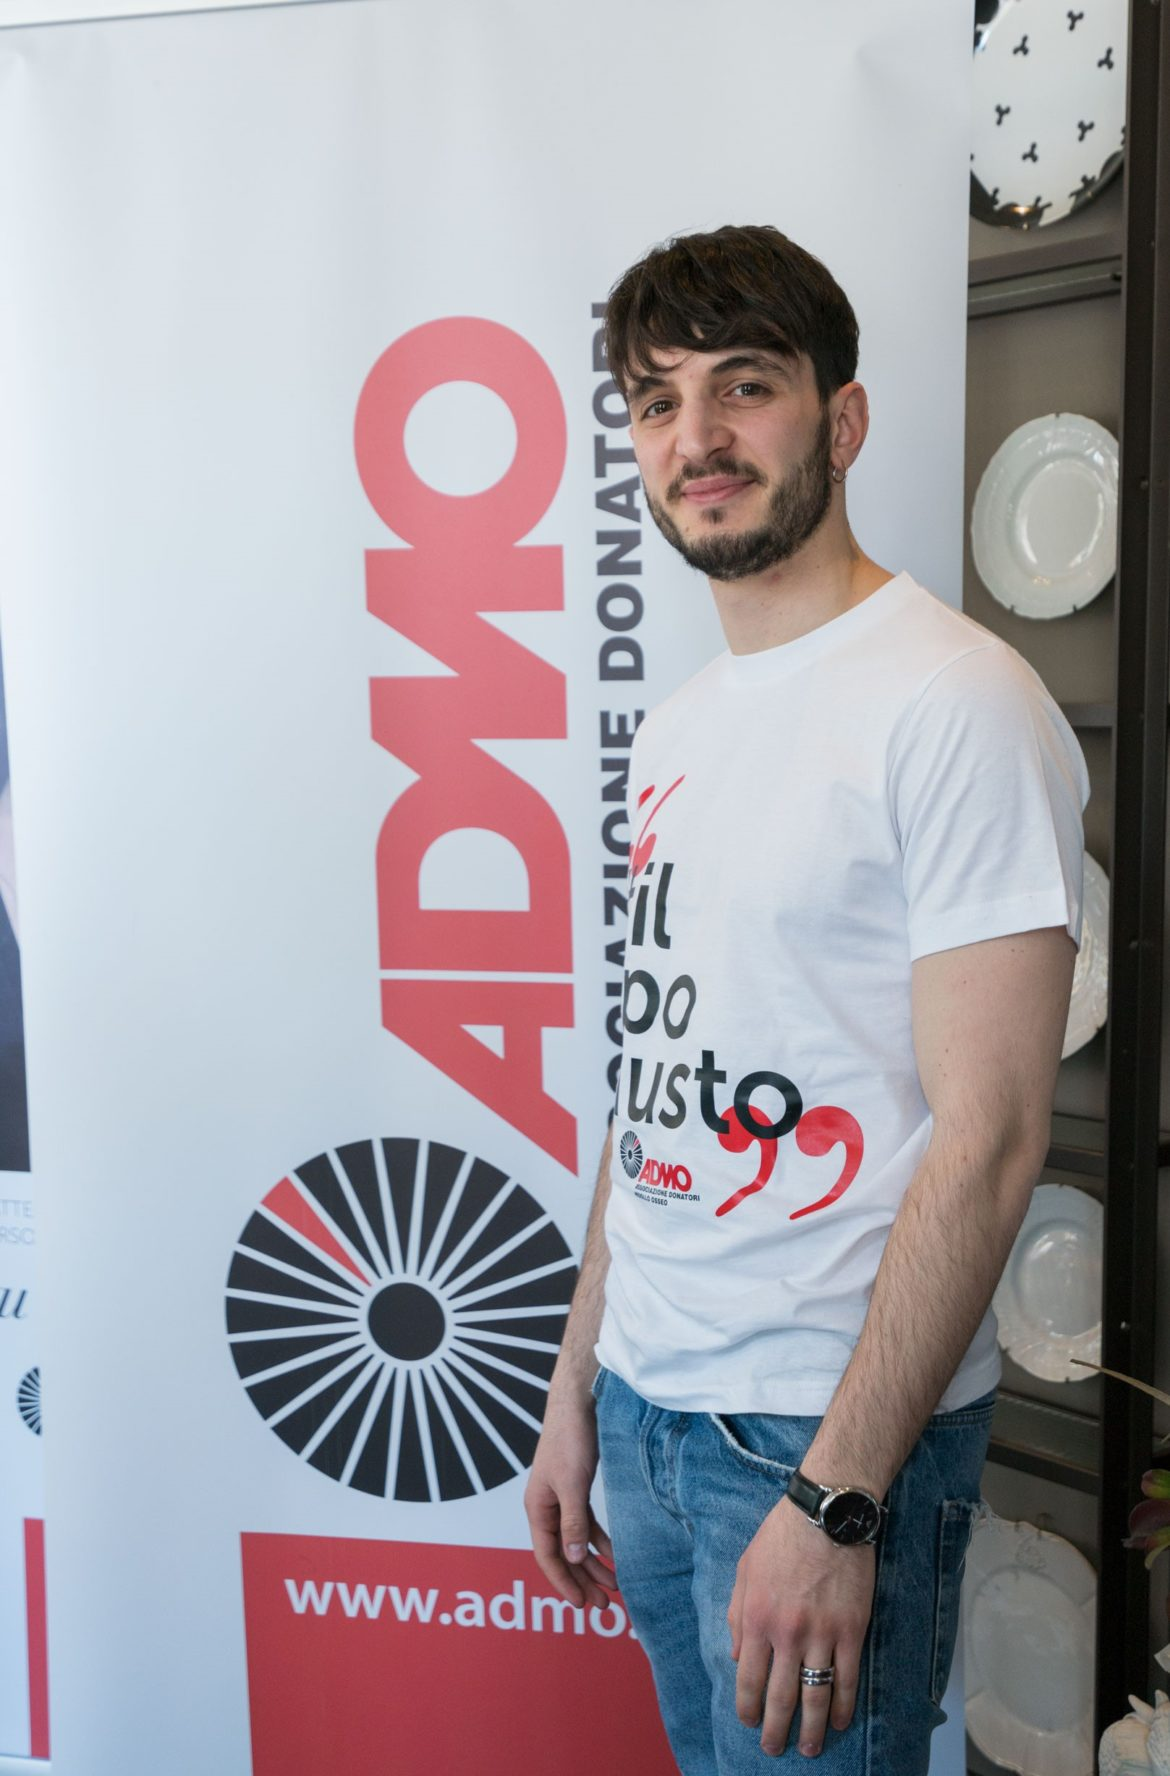 Admo – Press Lunch w/Giacomo Ferrara